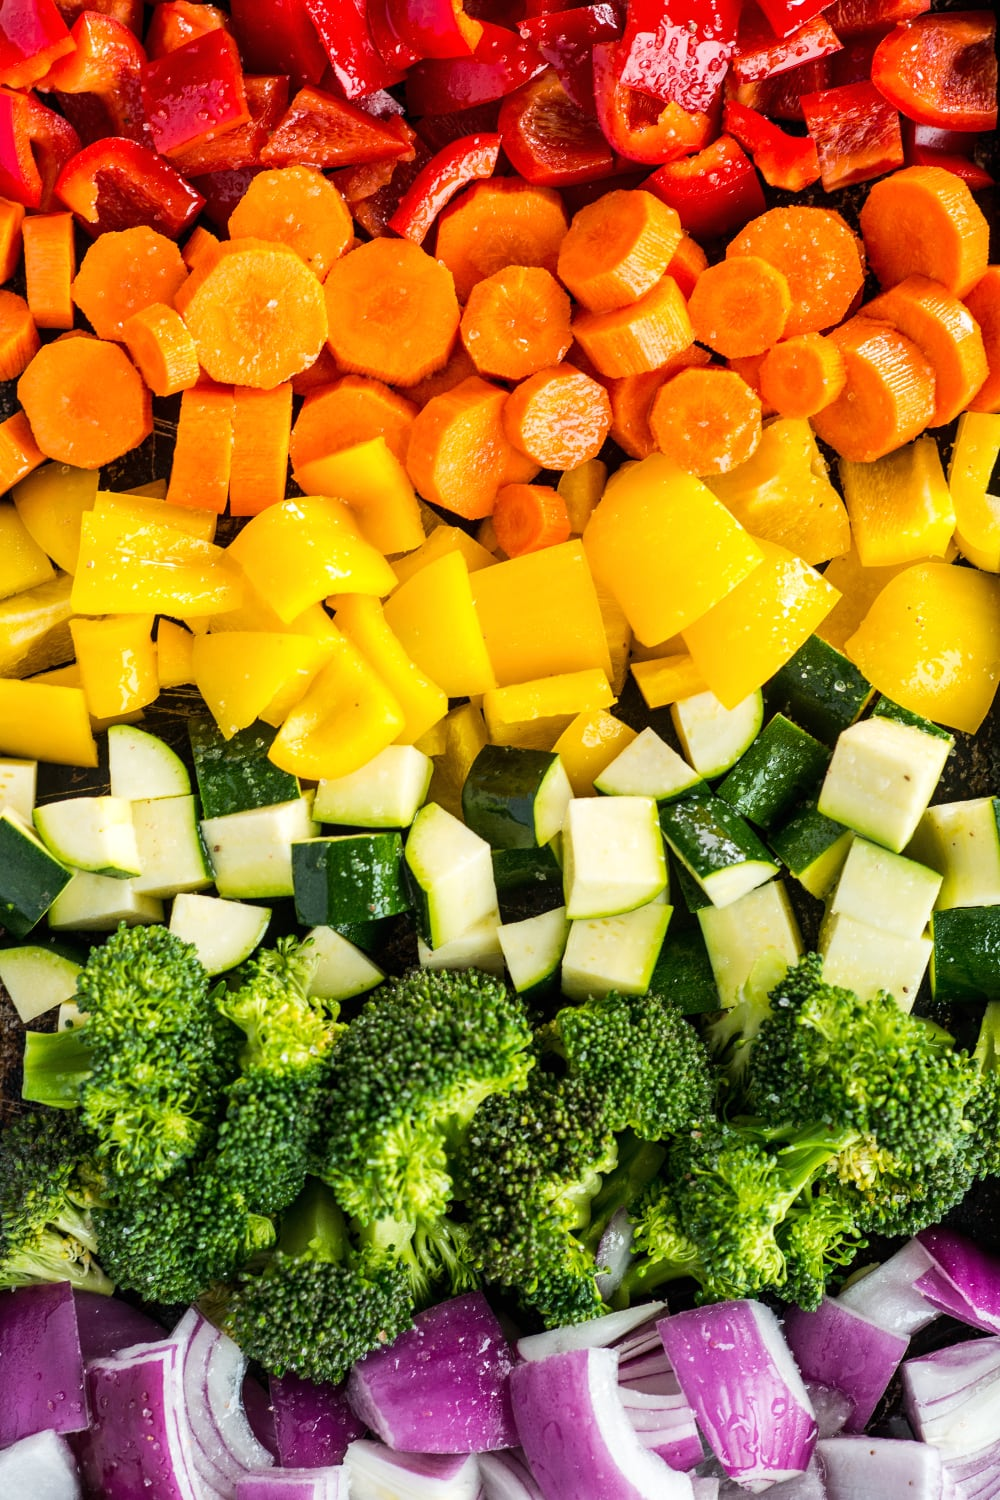 raw vegetables ready to be cooked